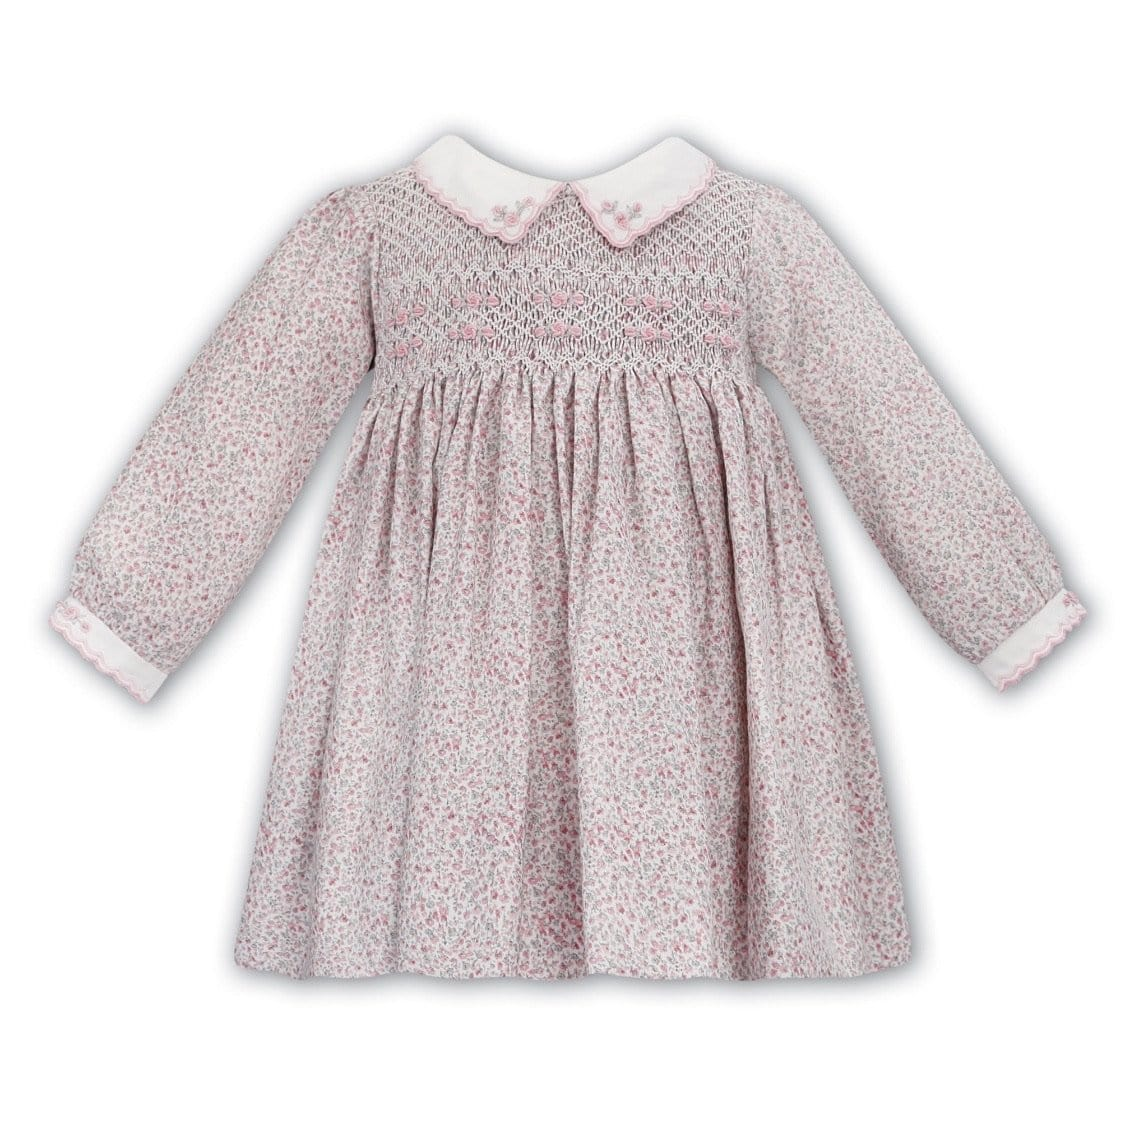 SARAH LOUISE PINK FLORAL SMOCKED DRESS